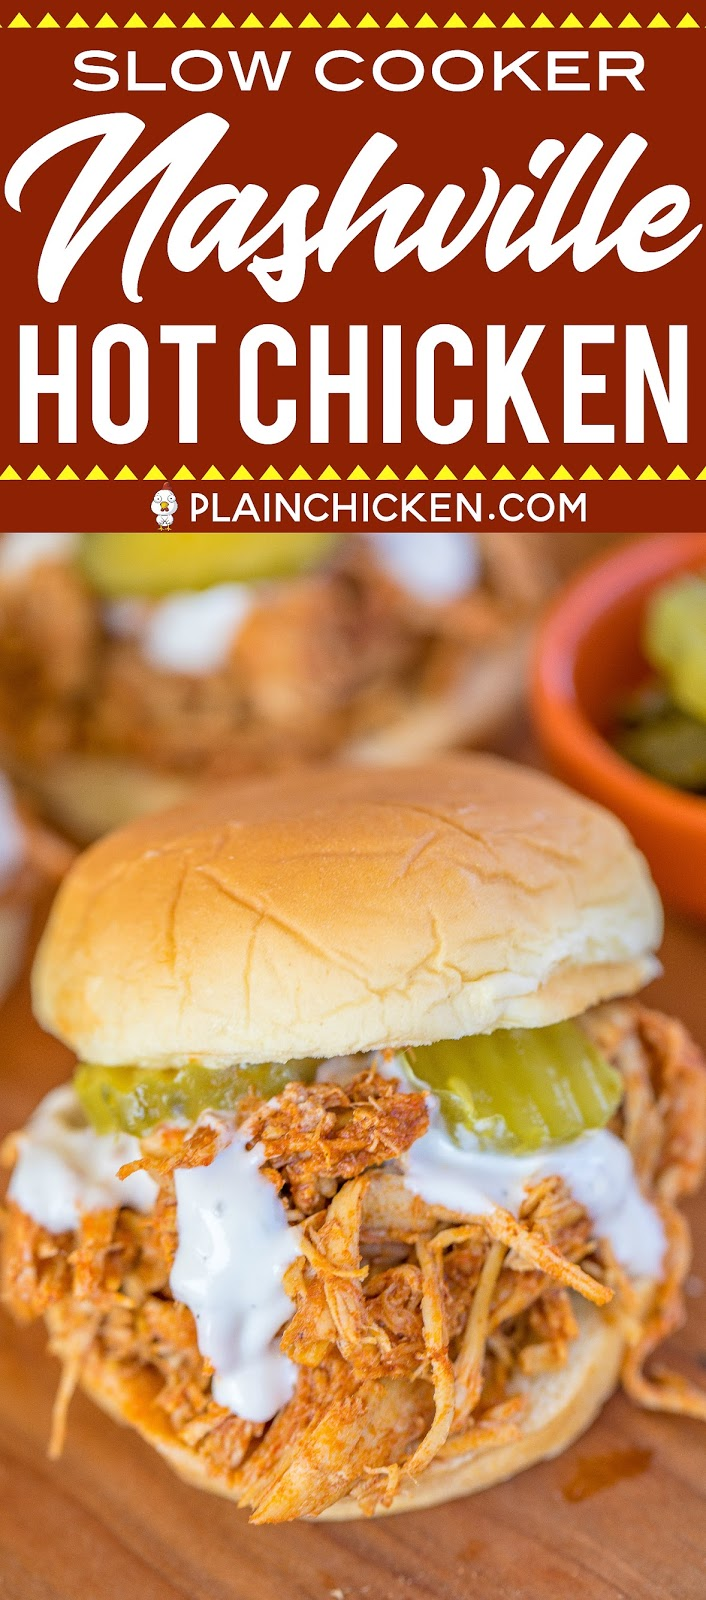 Slow Cooker Nashville Hot Chicken - adapted from the original Hattie B's Hot Chicken recipe in Nashville, TN. SO good!! Chicken, cayenne, brown sugar, garlic powder, paprika, chili powder, butter and chicken broth. Serve the chicken on slider buns with ranch and pickles. SO good! Sweet and spicy in every bite - YUM! #slowcooker #nashvillehotchicken #chickenrecipe #hotchicken